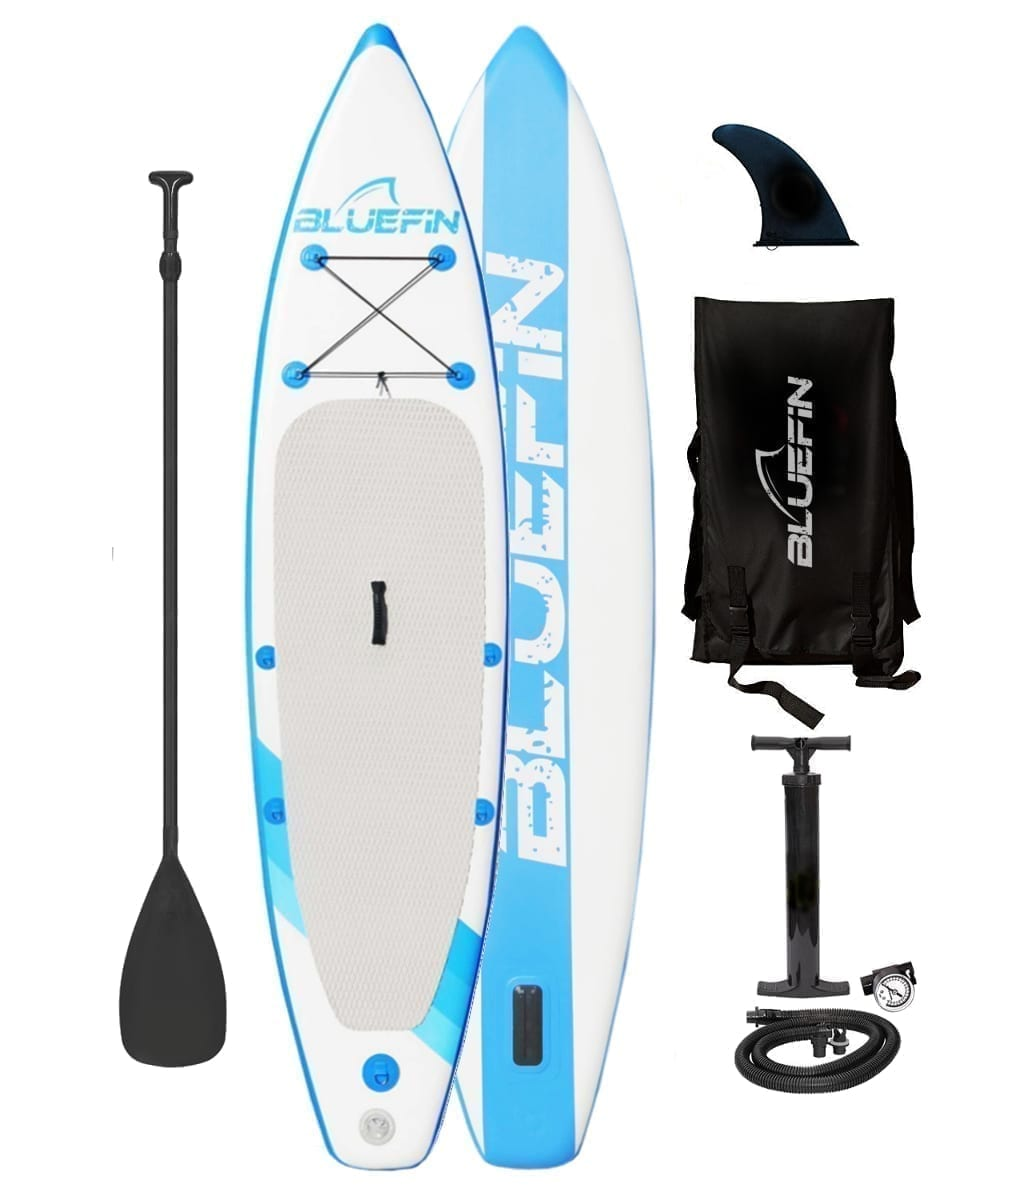 Bluefin inflatable stand up paddle board kit